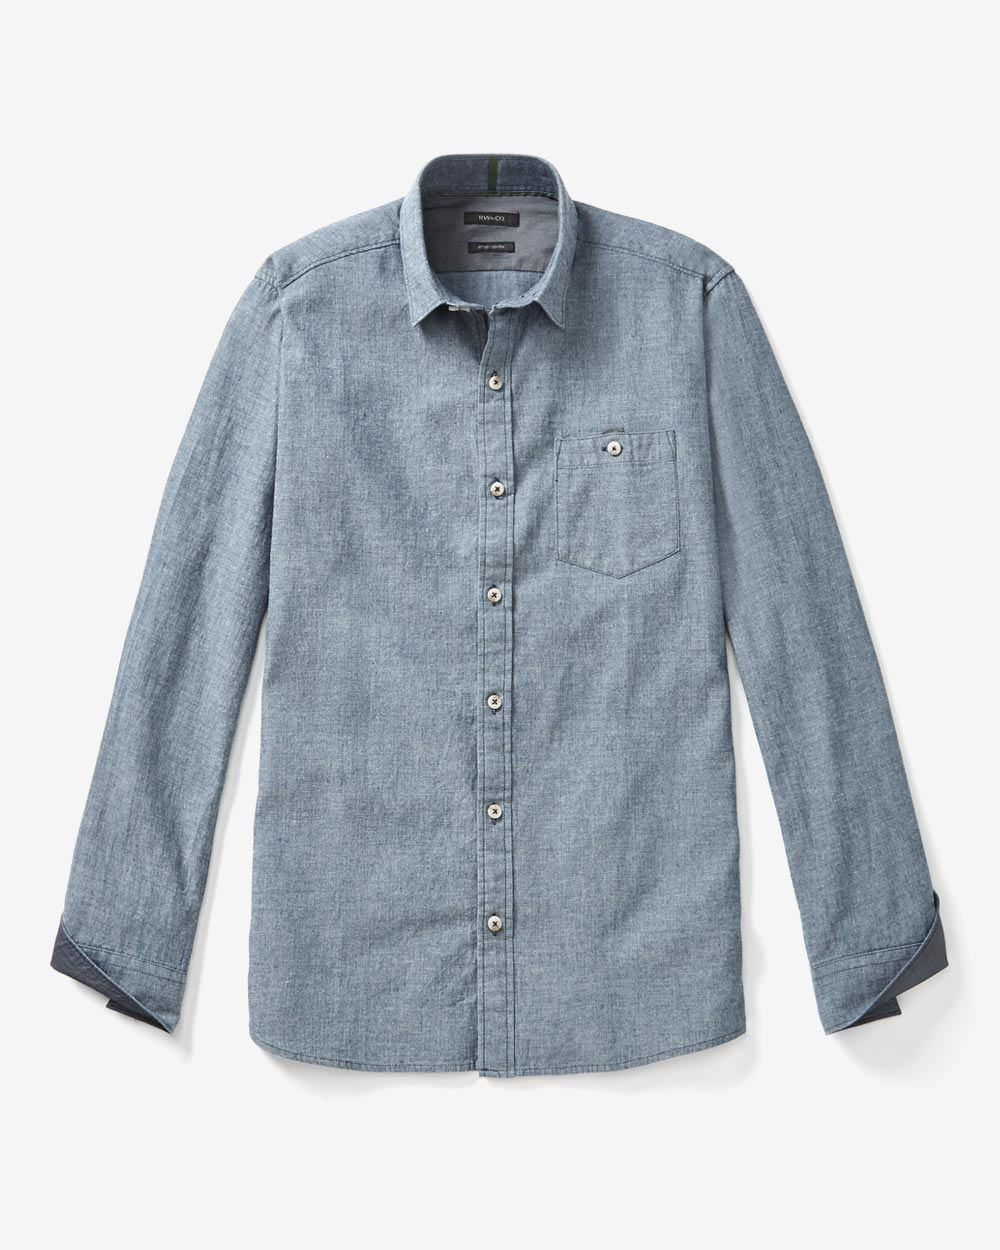 Chambray and denim button-up shirts are super soft and durable. Shop UNTUCKit's denim and chambray shirt collection today!